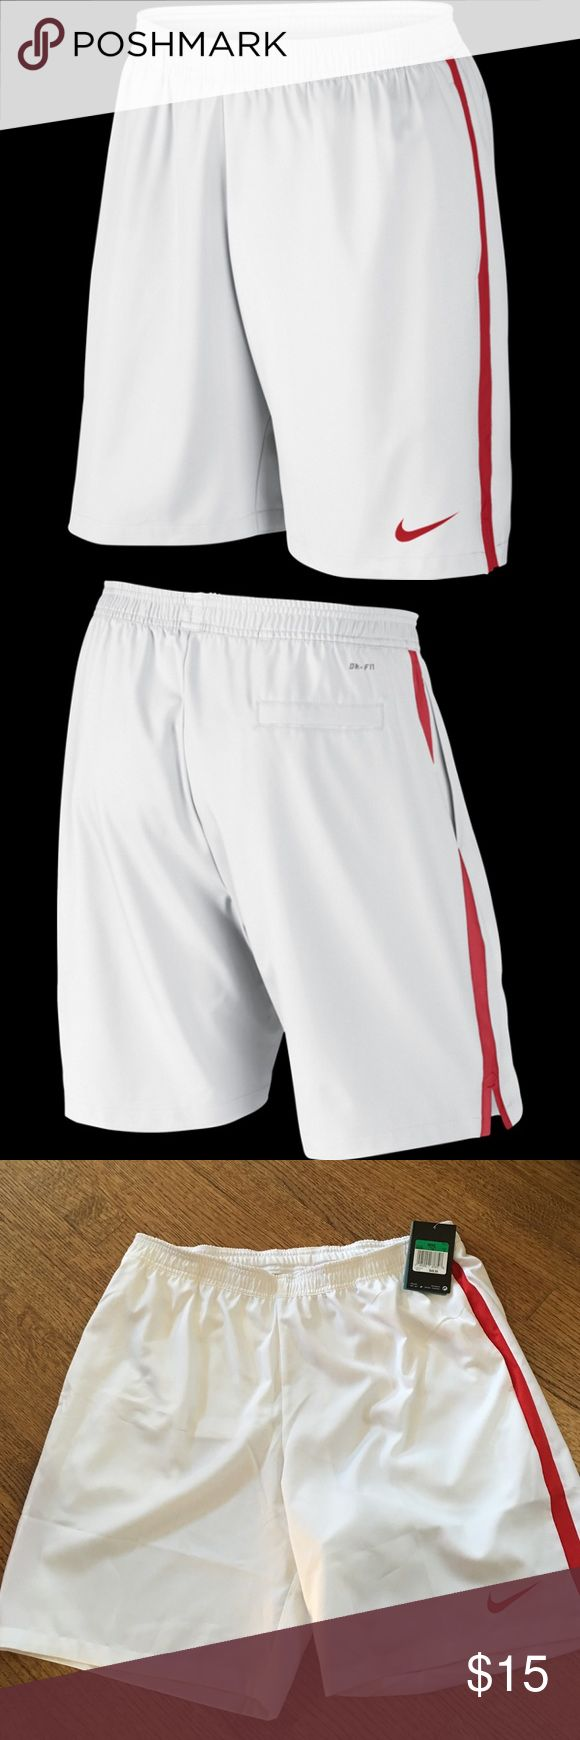 NWT Nike Men's Shorts 💪🏽 NWT Nike Men's Shorts 💪🏽 Brand new, never worn men's XL Tennis shorts. Light weight and very comfortable. Perfect for lounging or exercising Nike Shorts Athletic